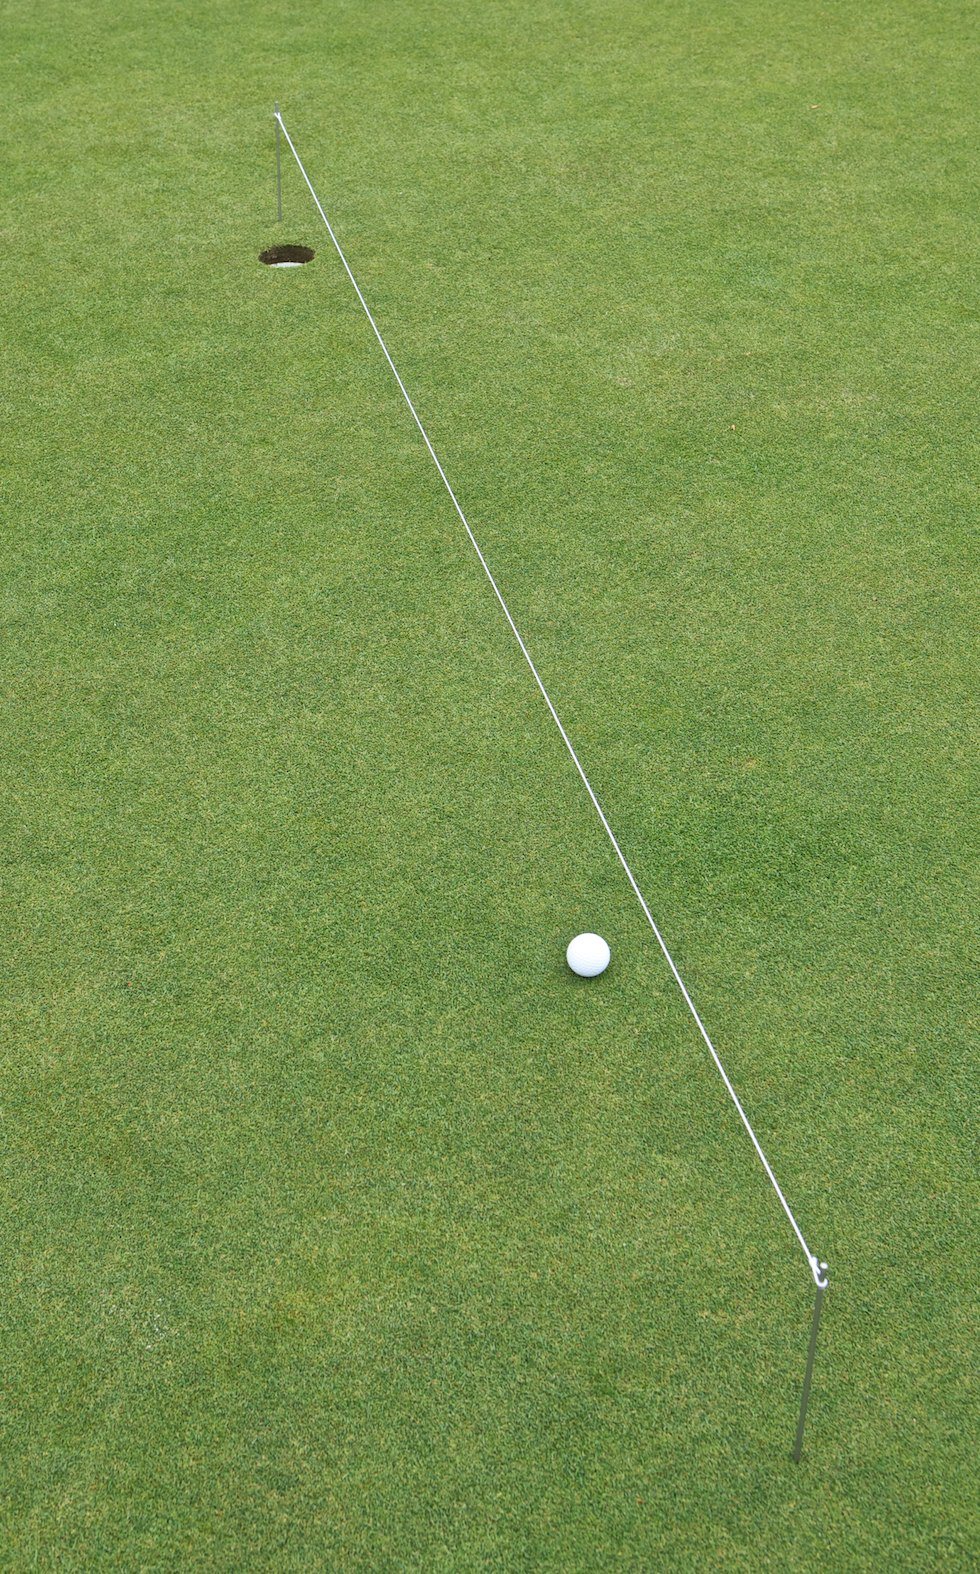 Swinkey Elevated Aimline